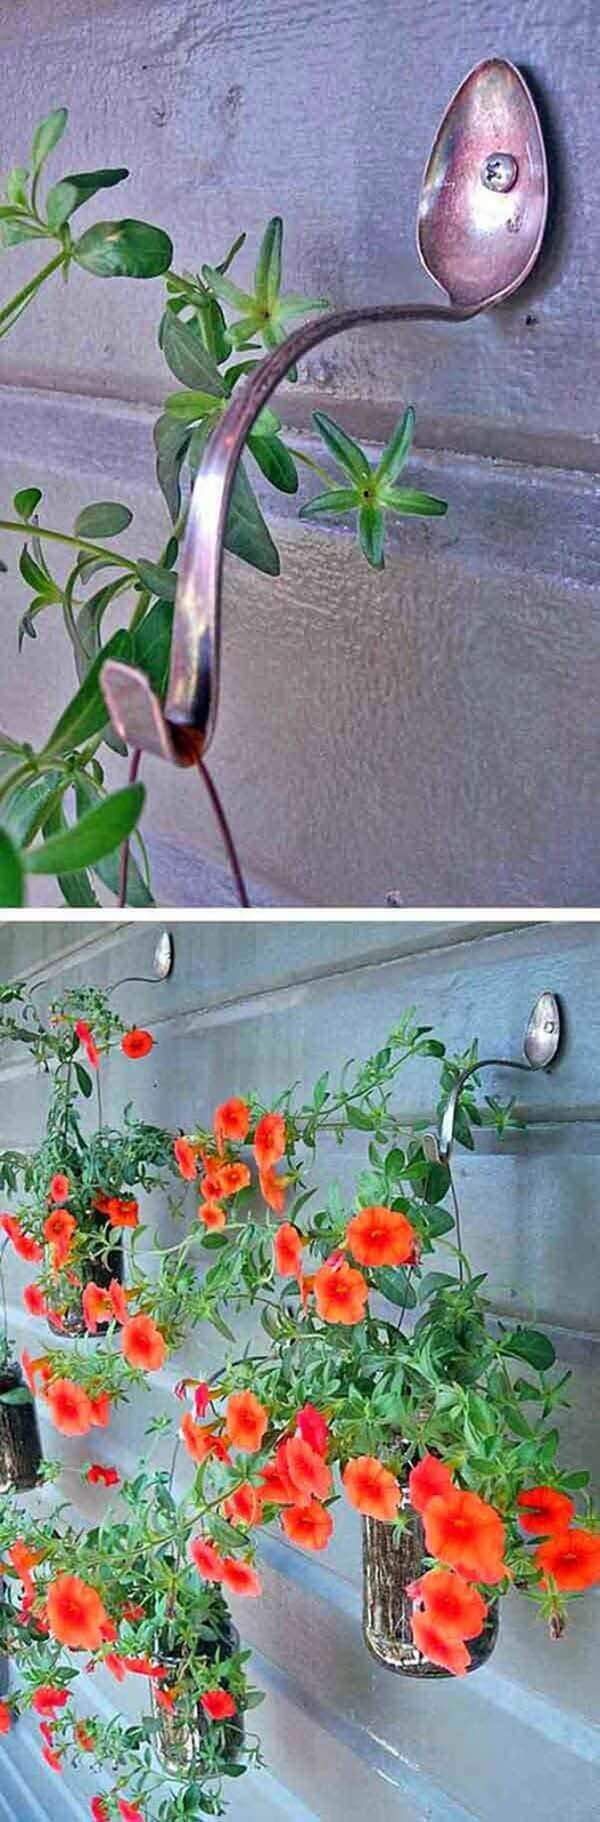 Hanging Basket Hooks Made From Spoons | DIY Outdoor Hanging Planter Ideas | Plant Pot Design Ideas